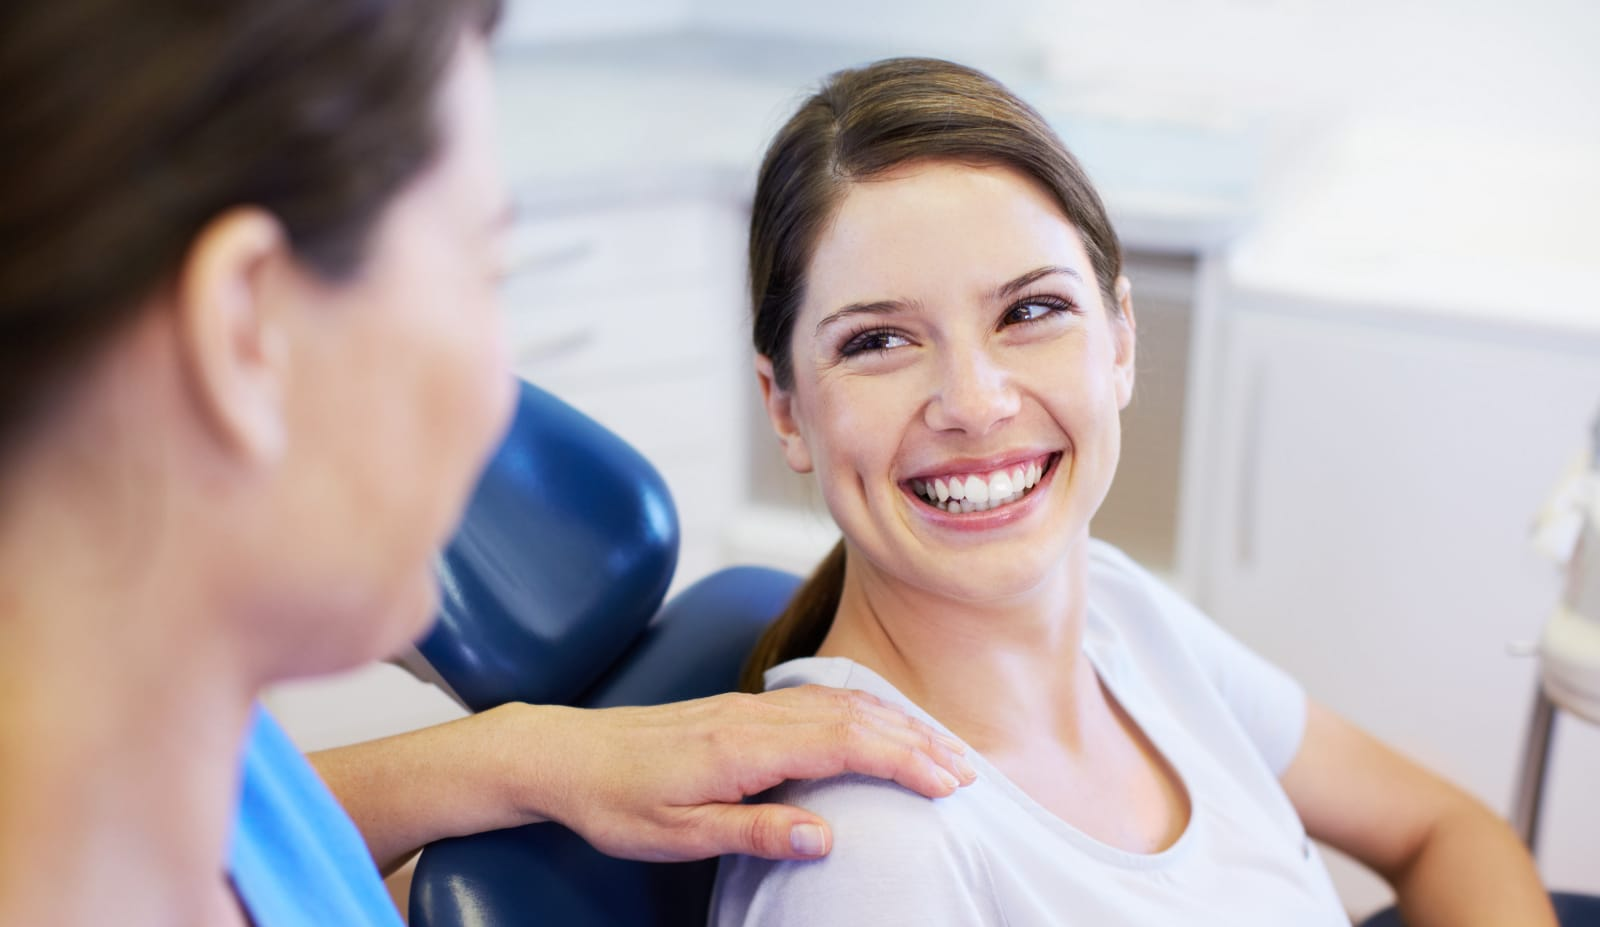 lady smiling in dentist chair photo